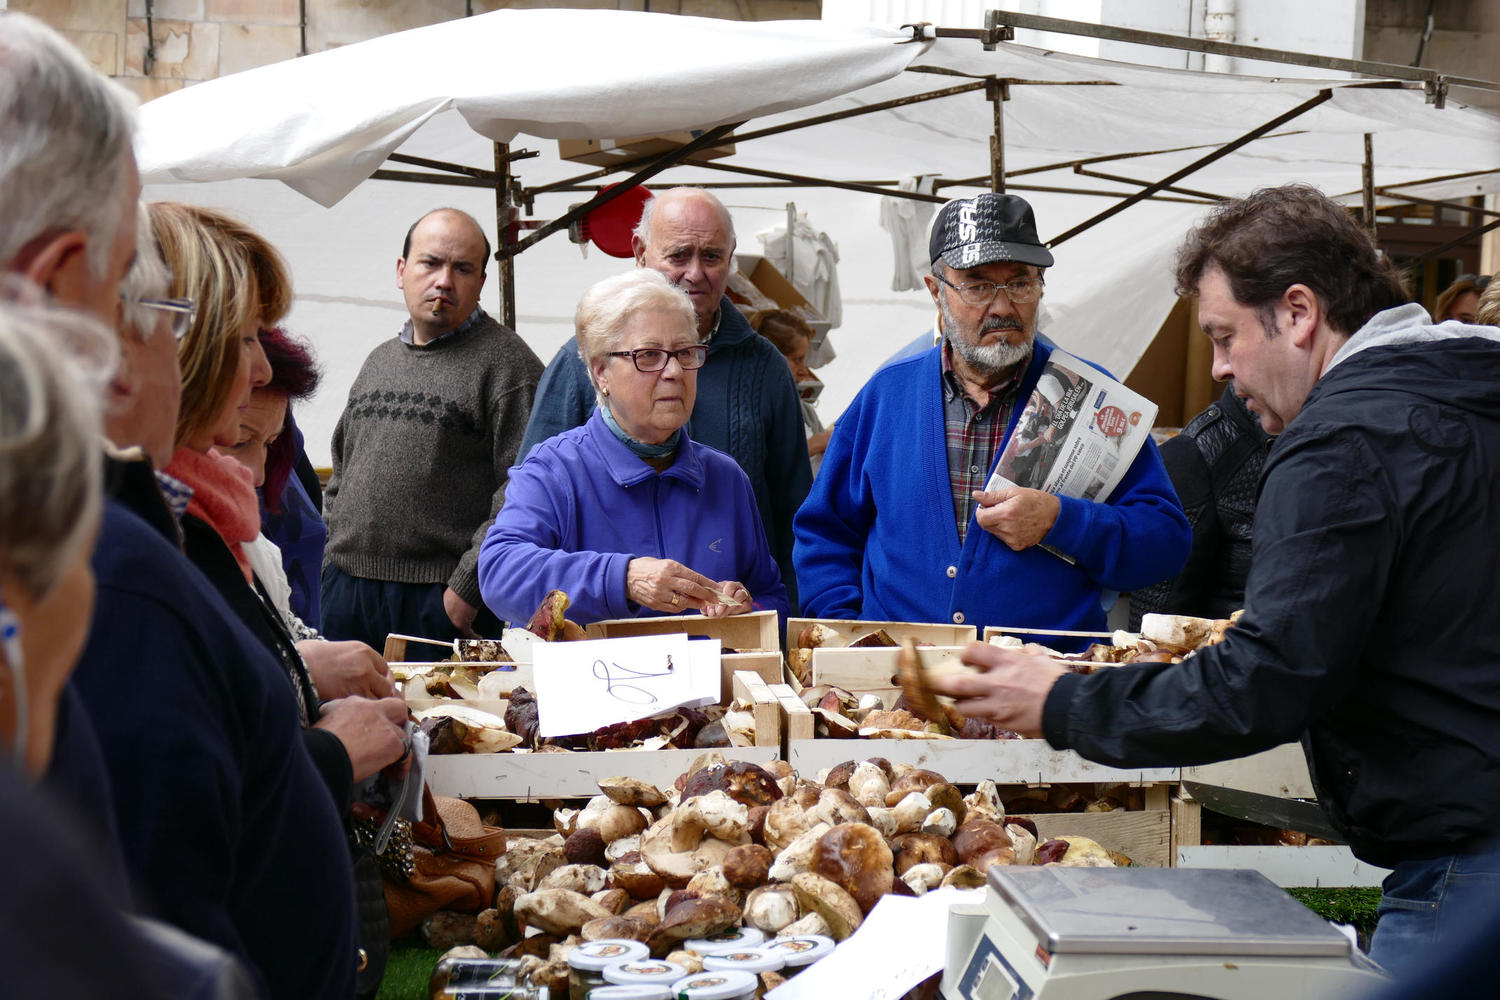 Examining the autumnal crop of mushrooms in a Basque market